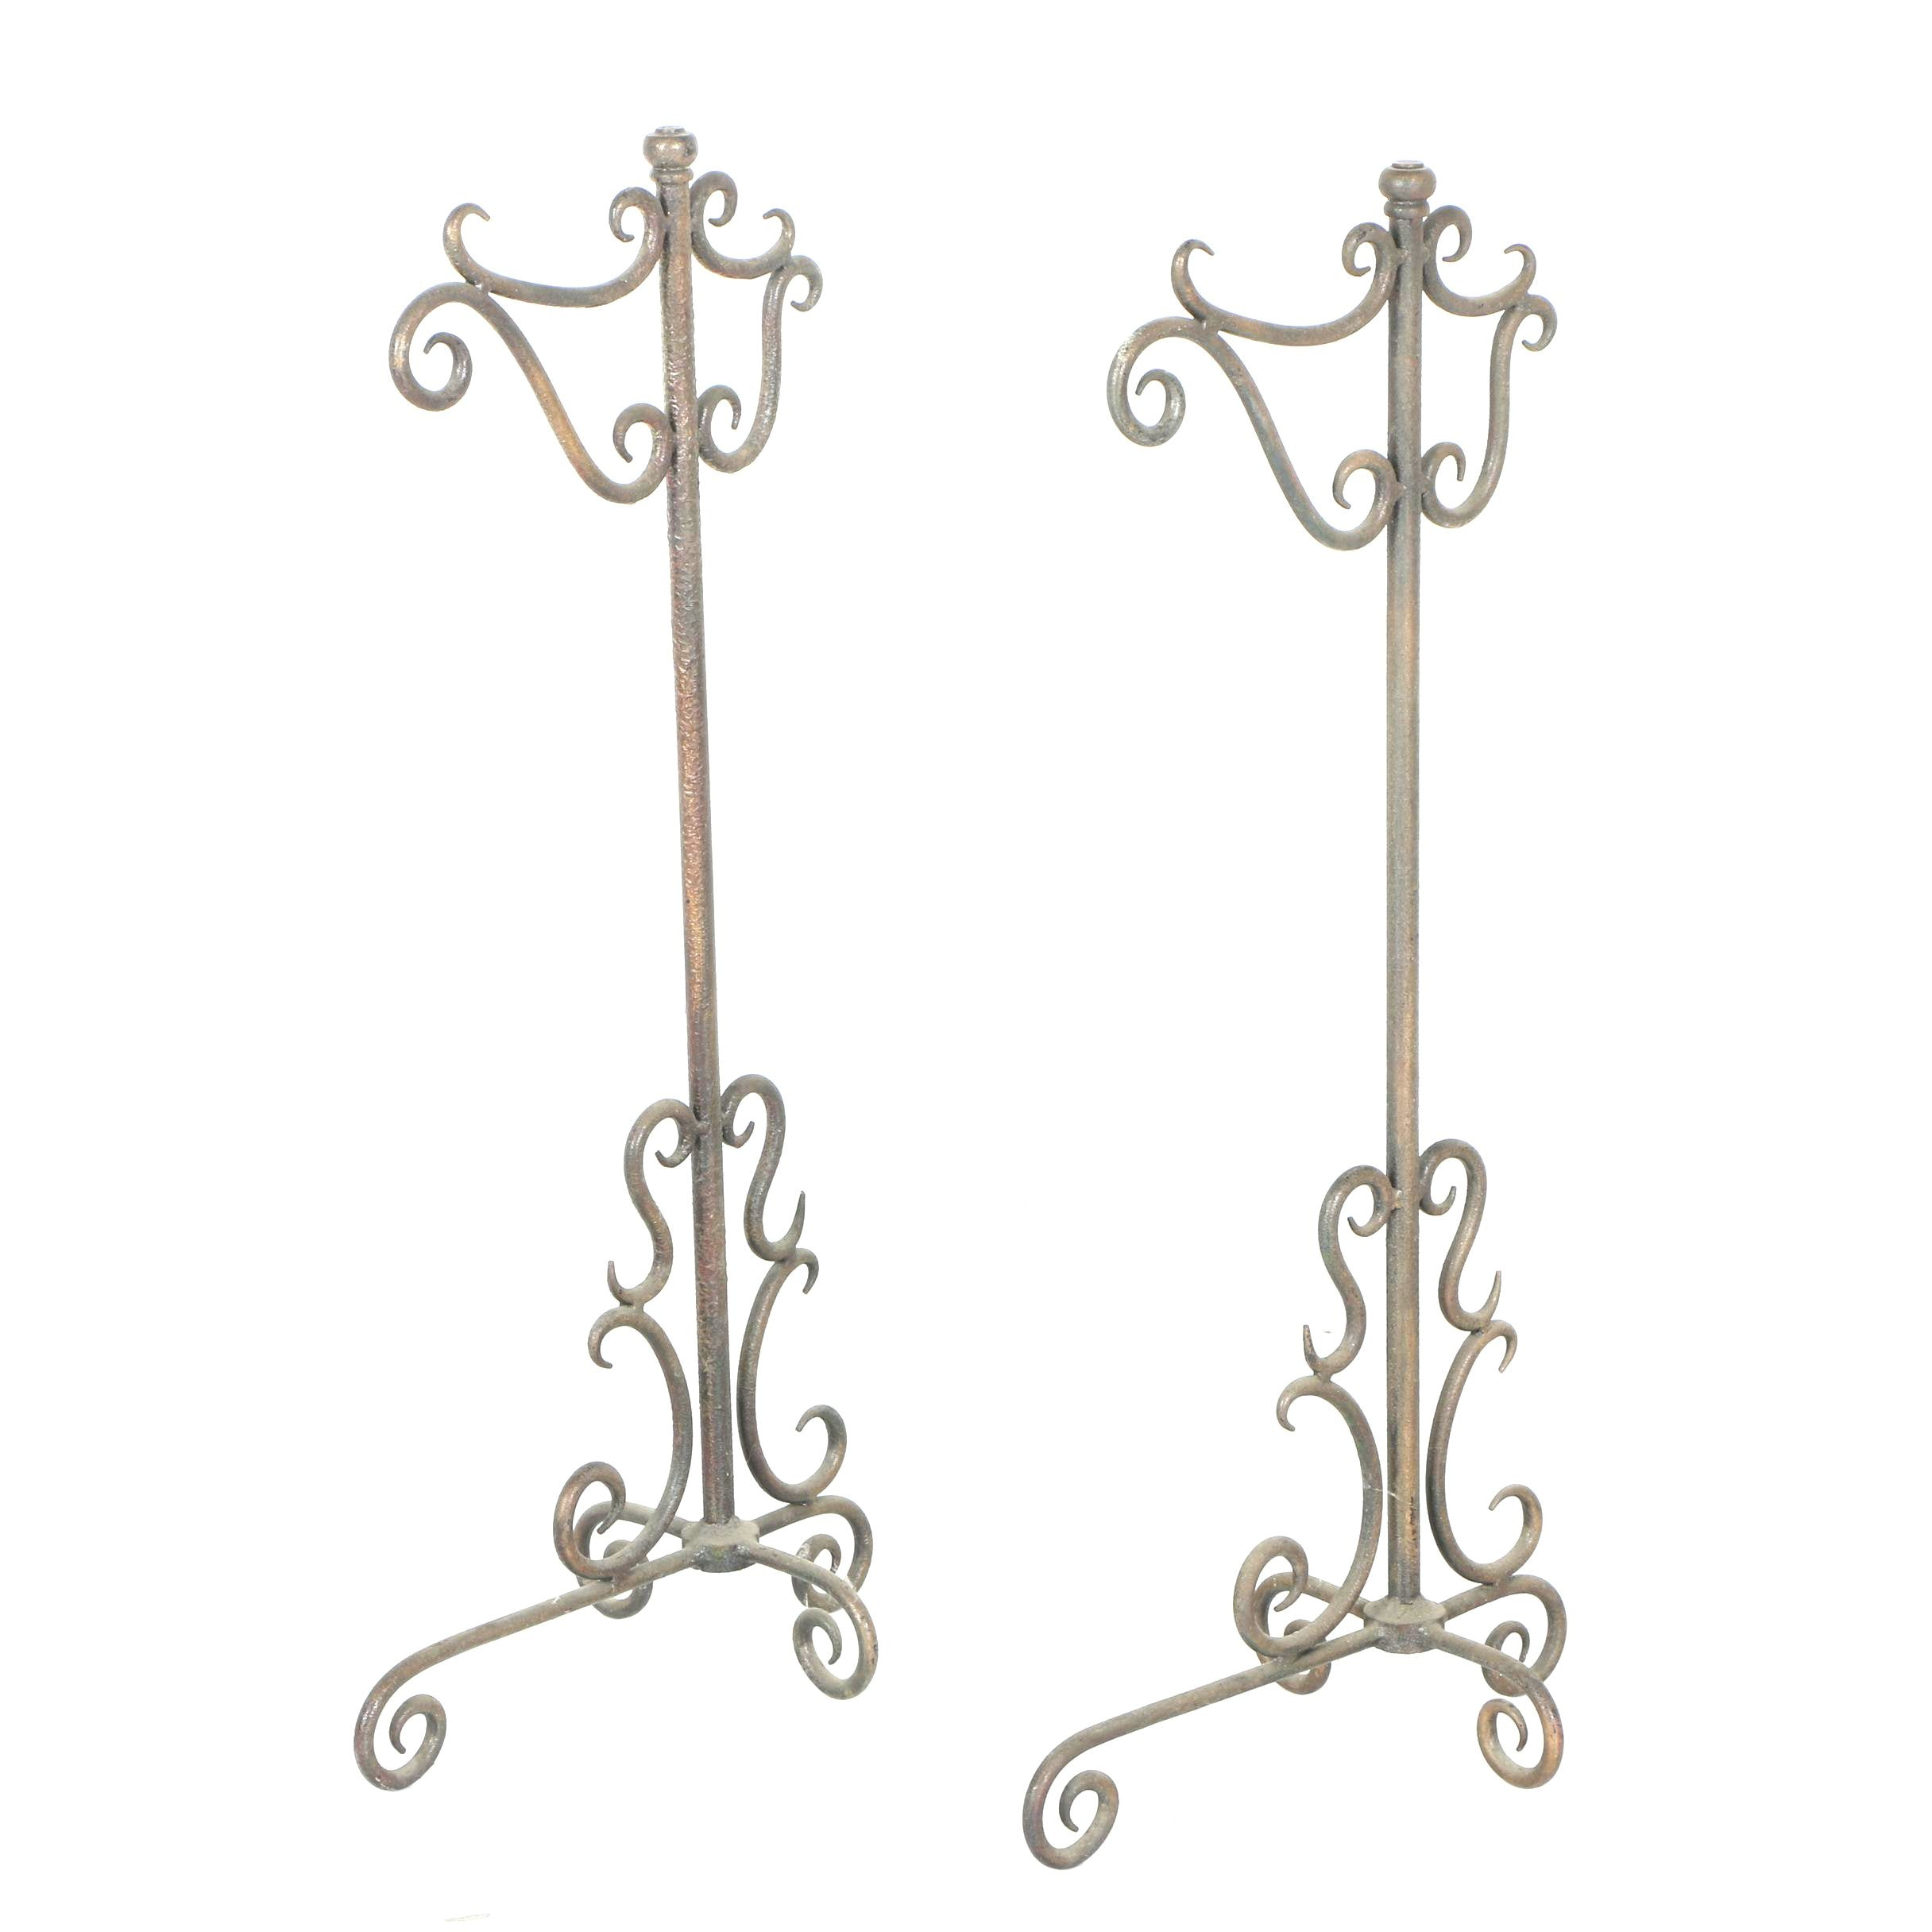 Pair of Scrolled Metal Stands